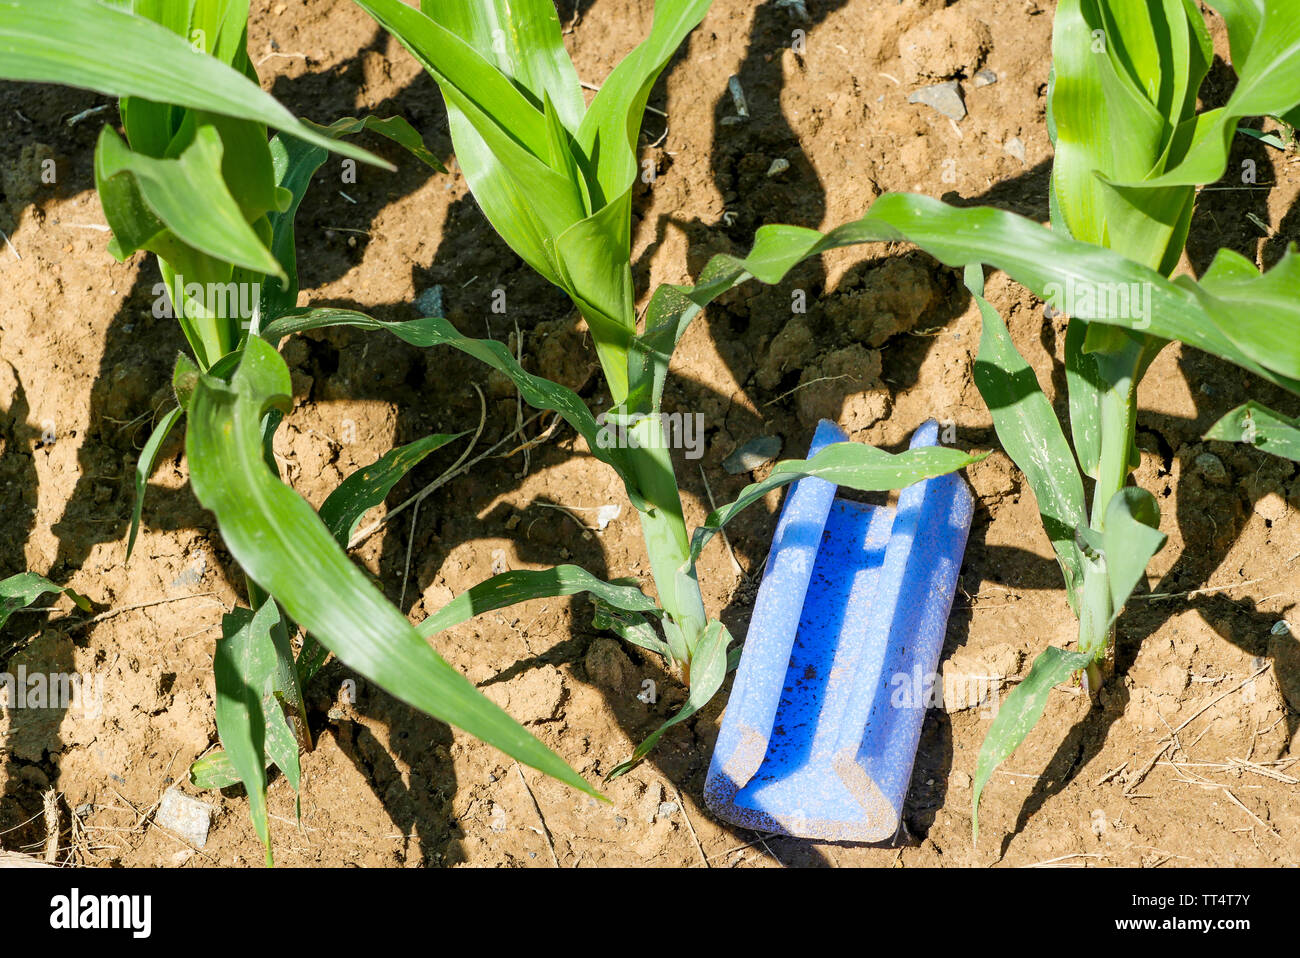 Pollution, a piece of plastic abandoned in a corn field, France Stock Photo